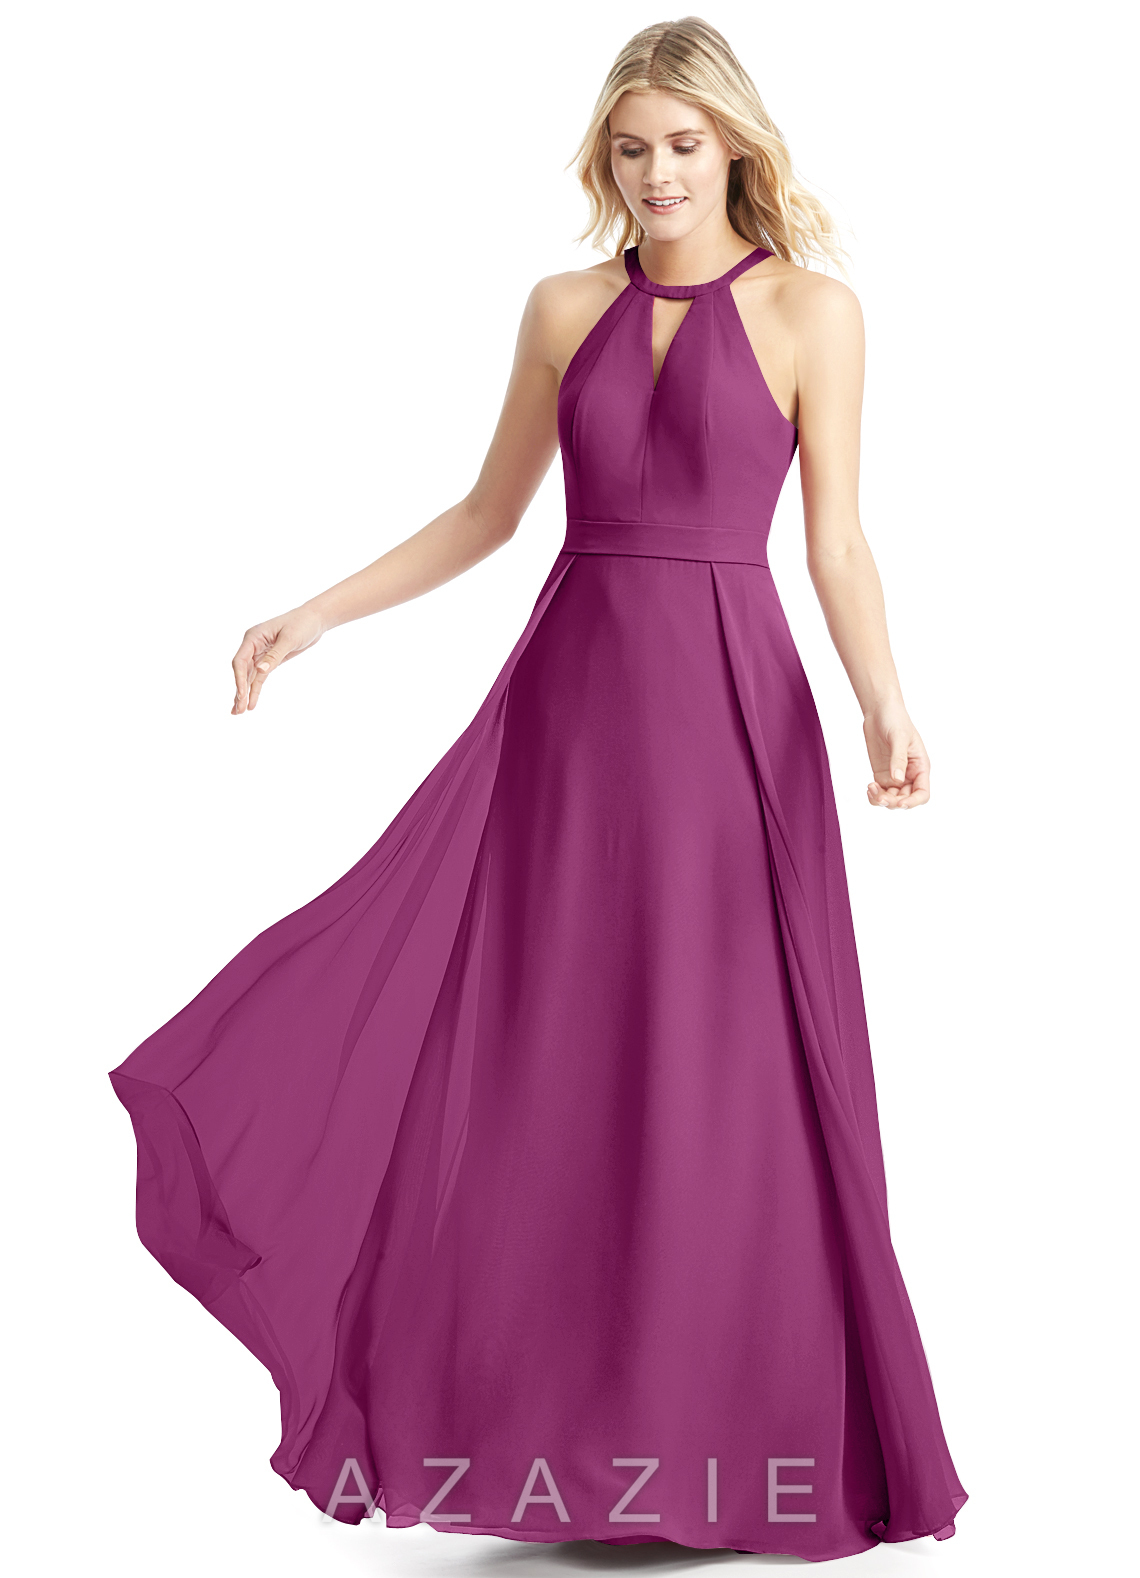 Azazie Melody Bridesmaid Dress | Azazie